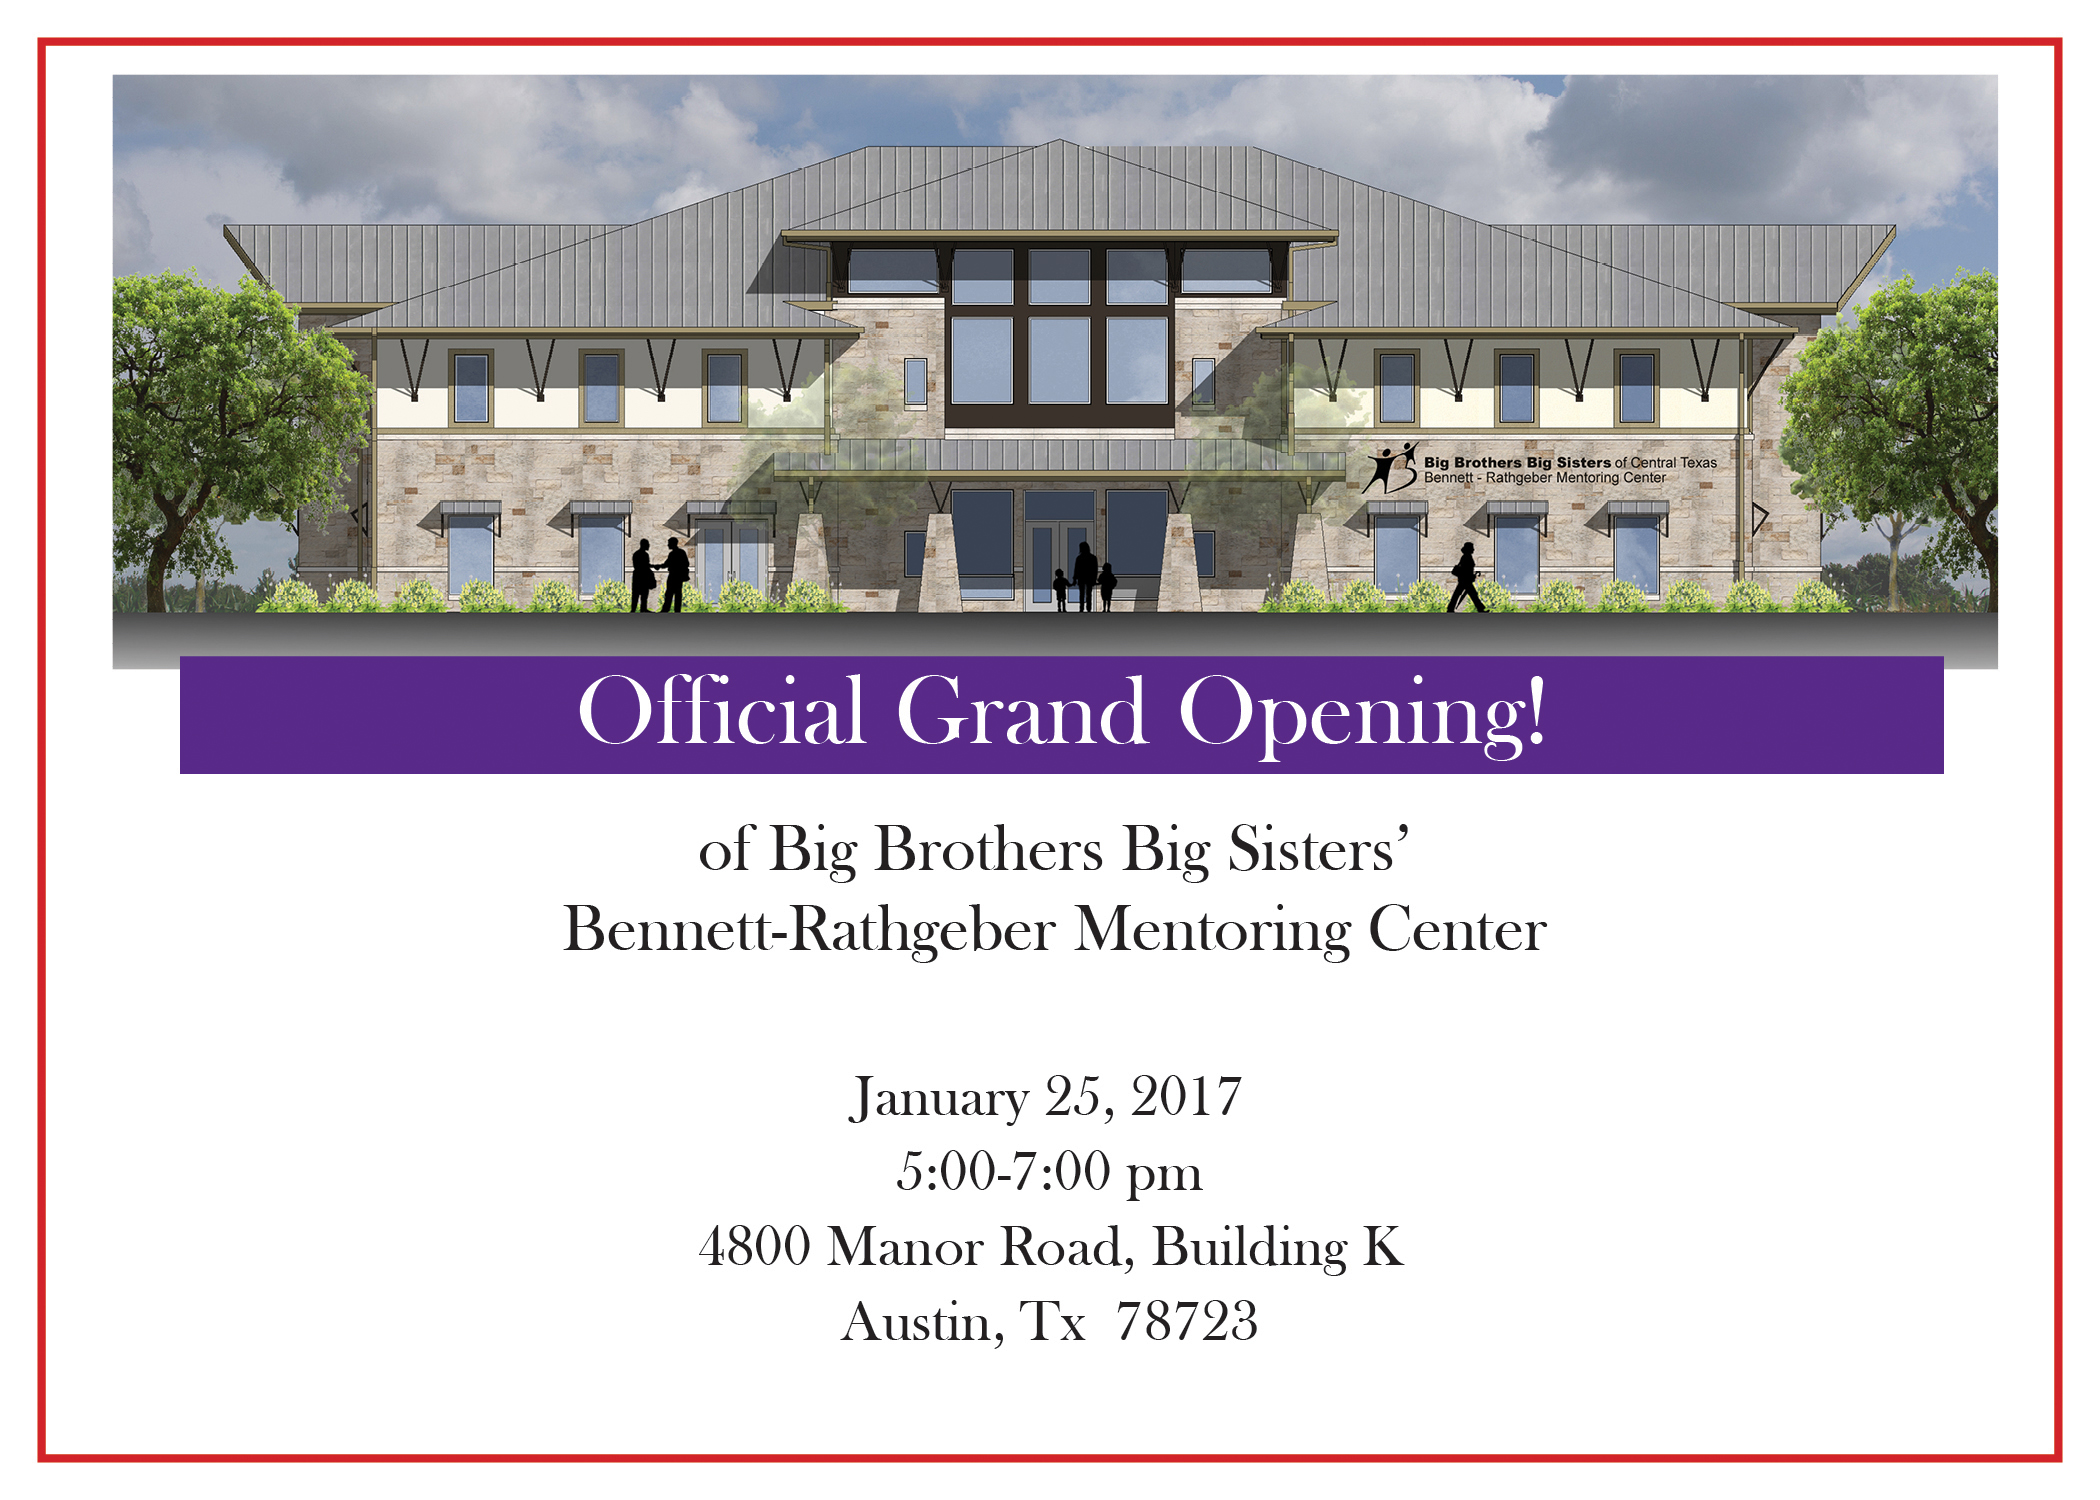 mentoring-center-grand-opening-card-srgb